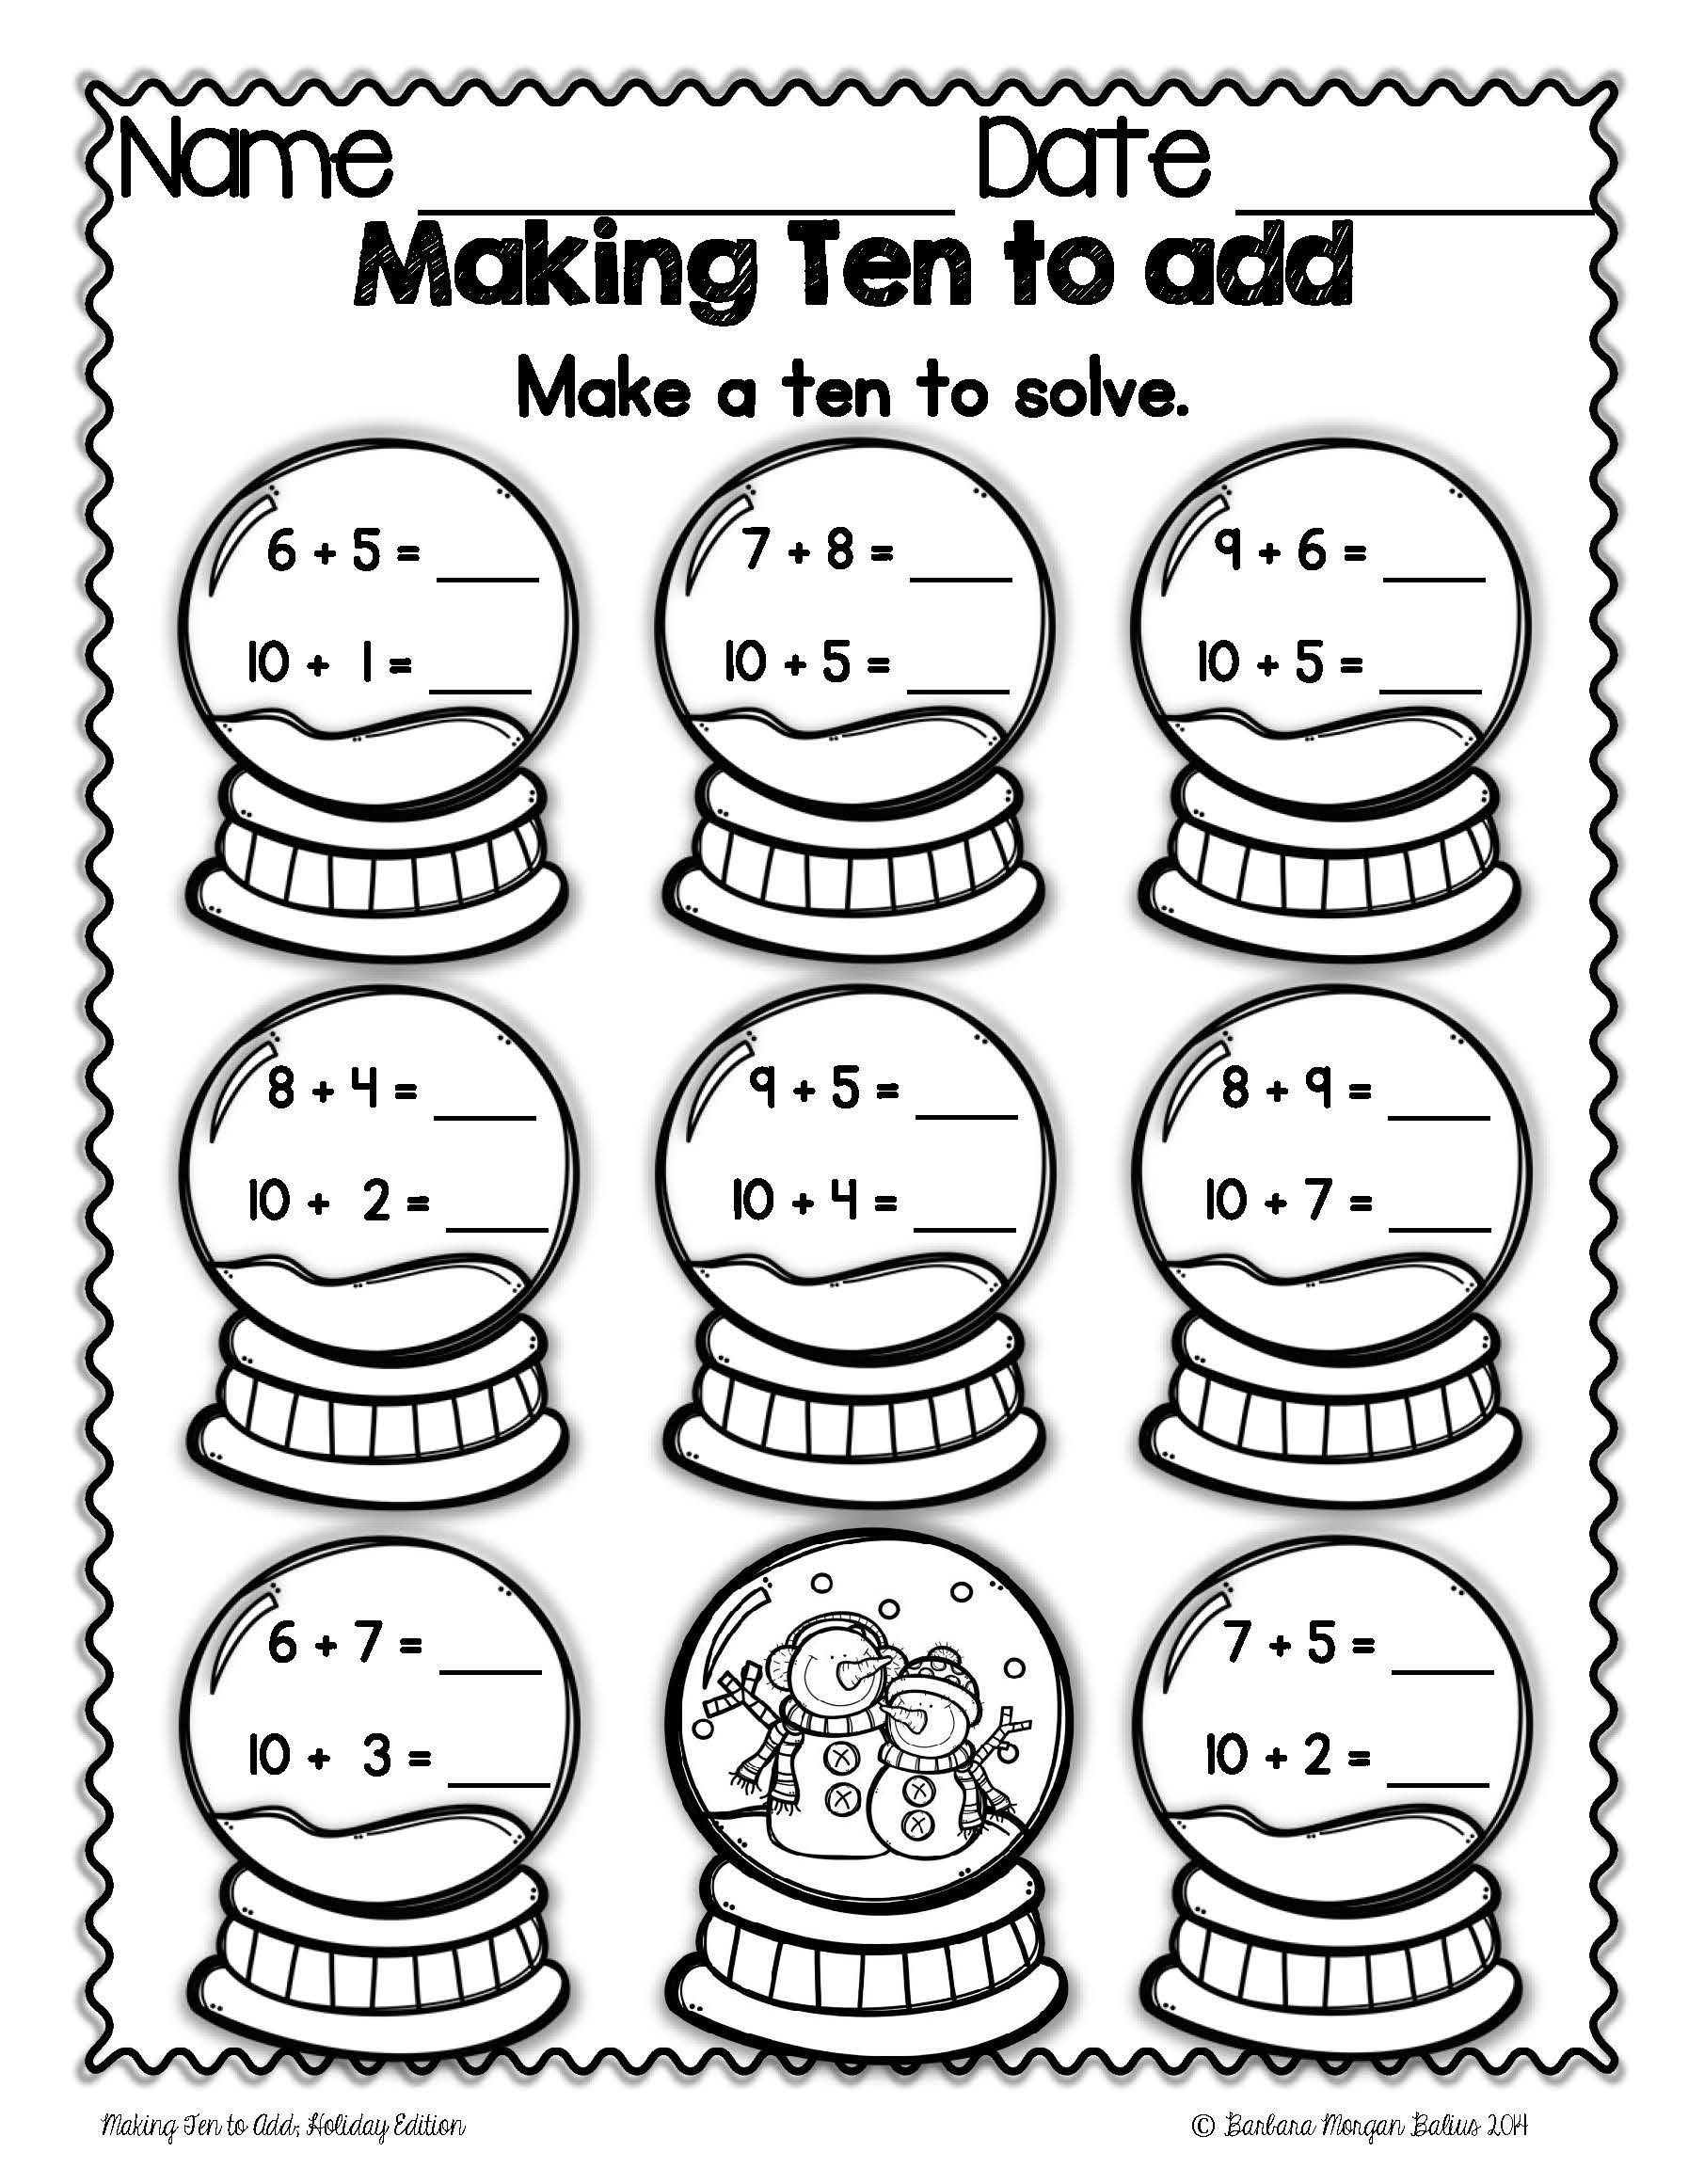 Second Grade History Worksheets 1989 Generationinitiative Page 2 Math Worksheets Go Linear